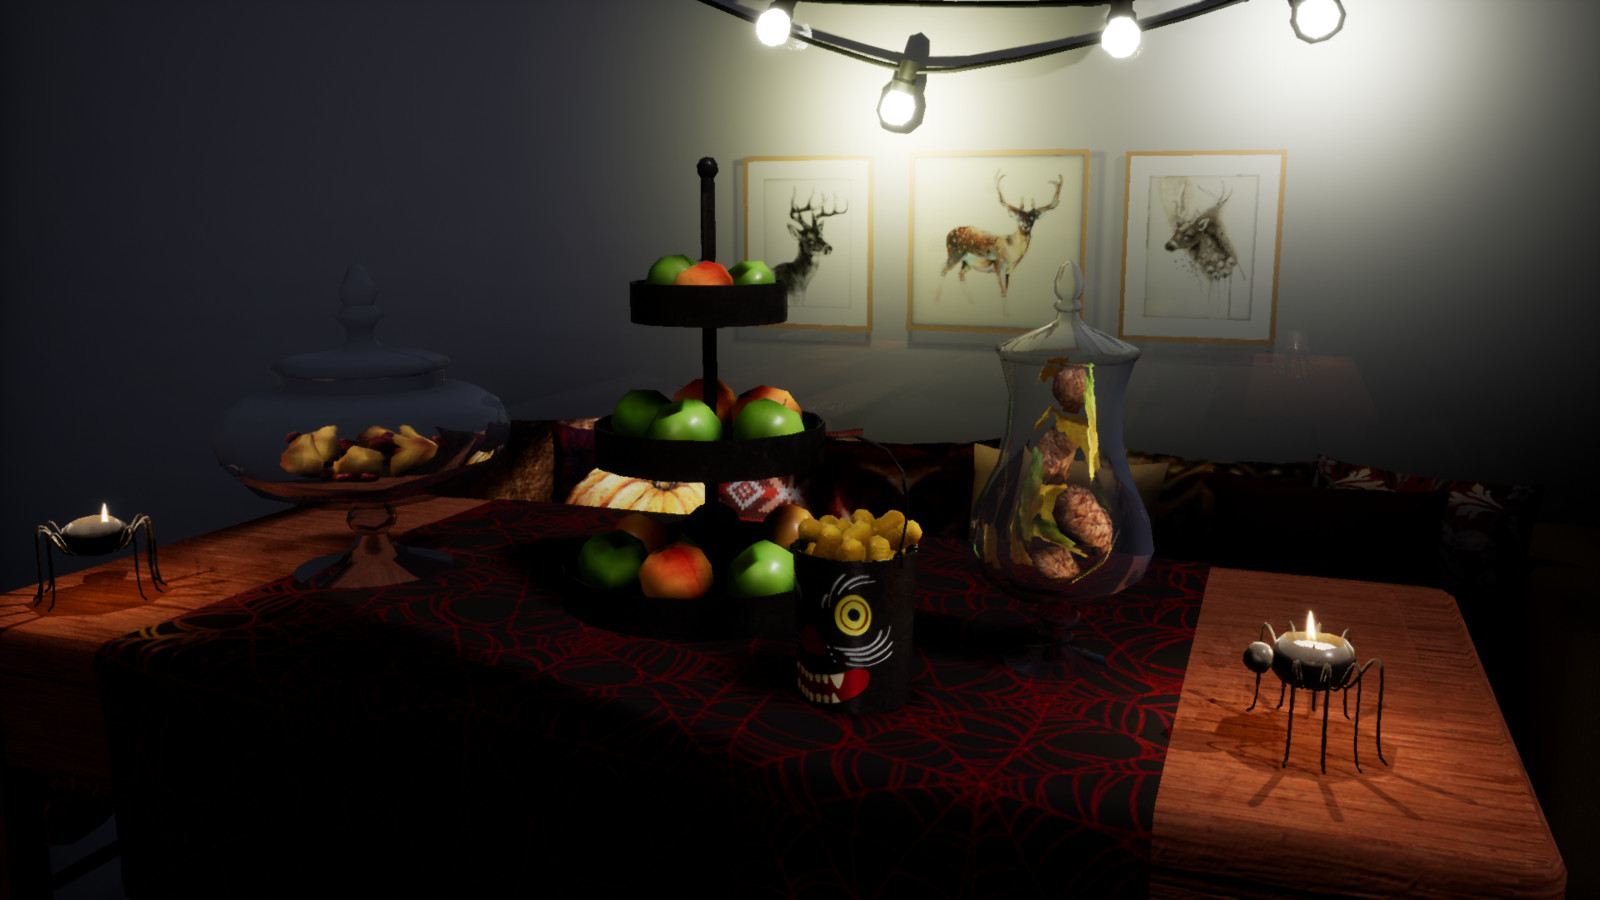 Unreal Engine 4. Tableware